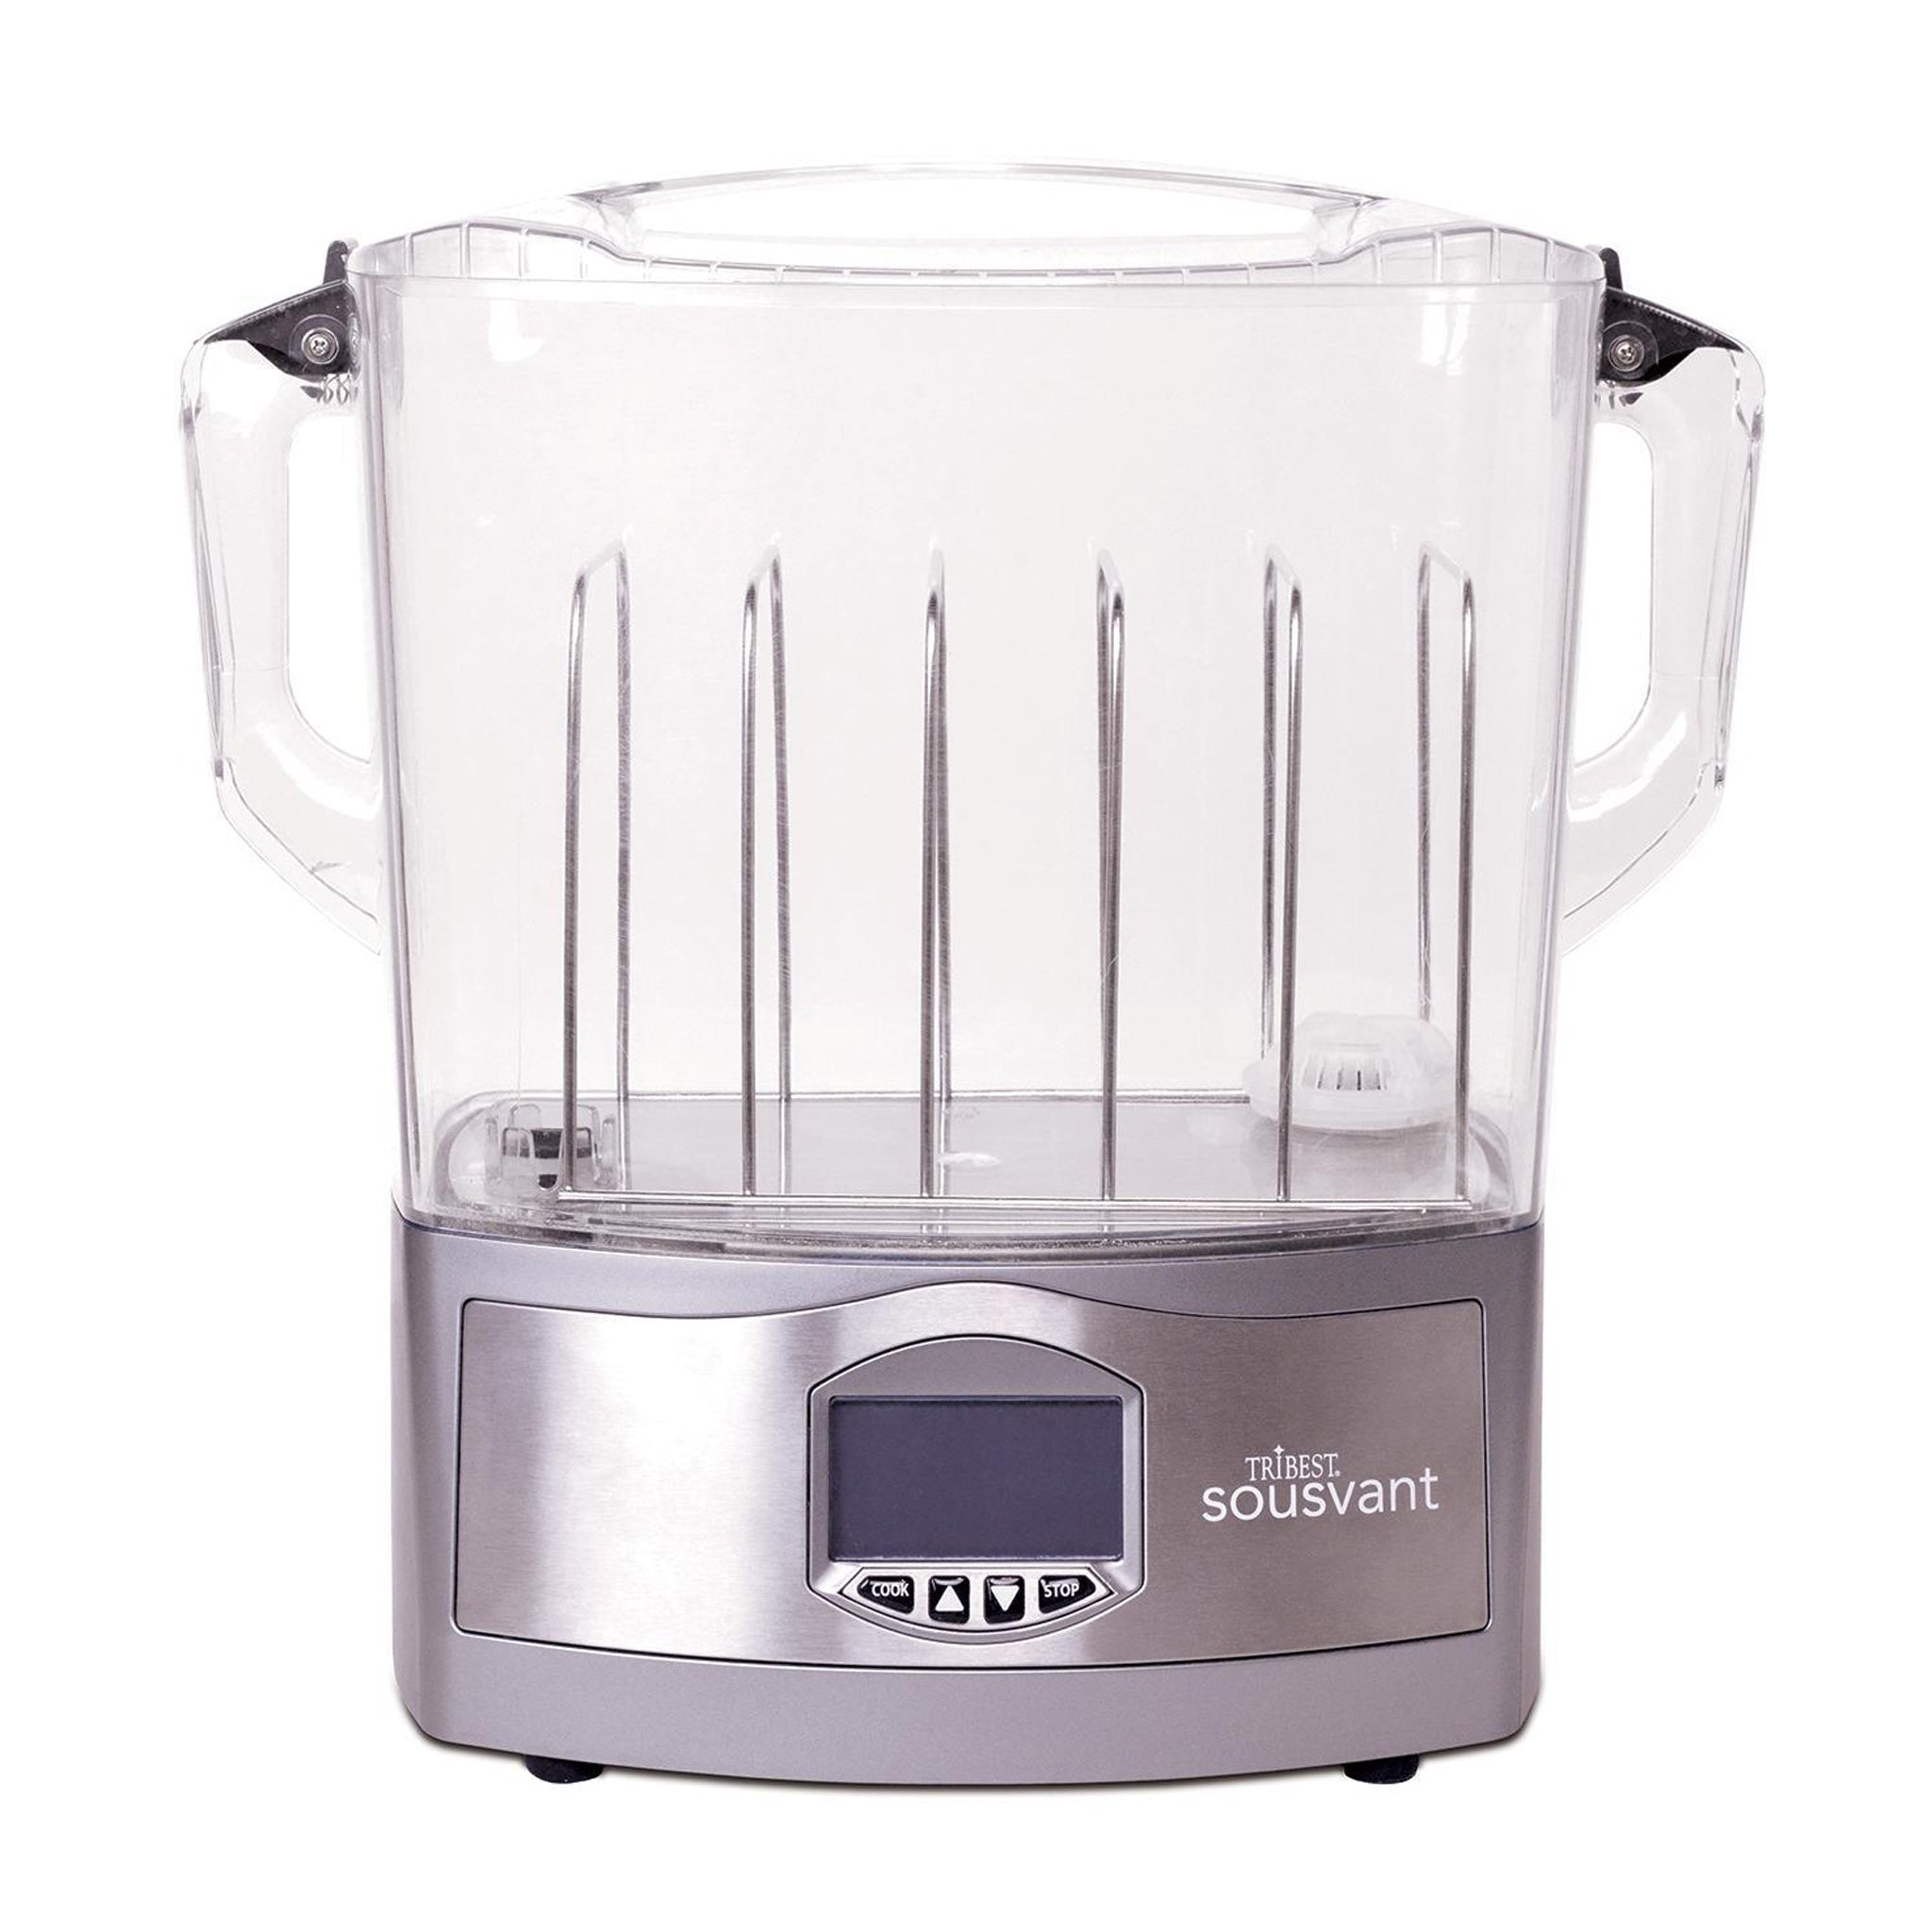 For Sousvant® Sous Vide Circulator SV-101. The Sousvant® Rack separates food pouches to maximize the number of portions the water oven will hold and also helps to keep food pouches submerged. It allows for proper circulation and ensure even cooking.